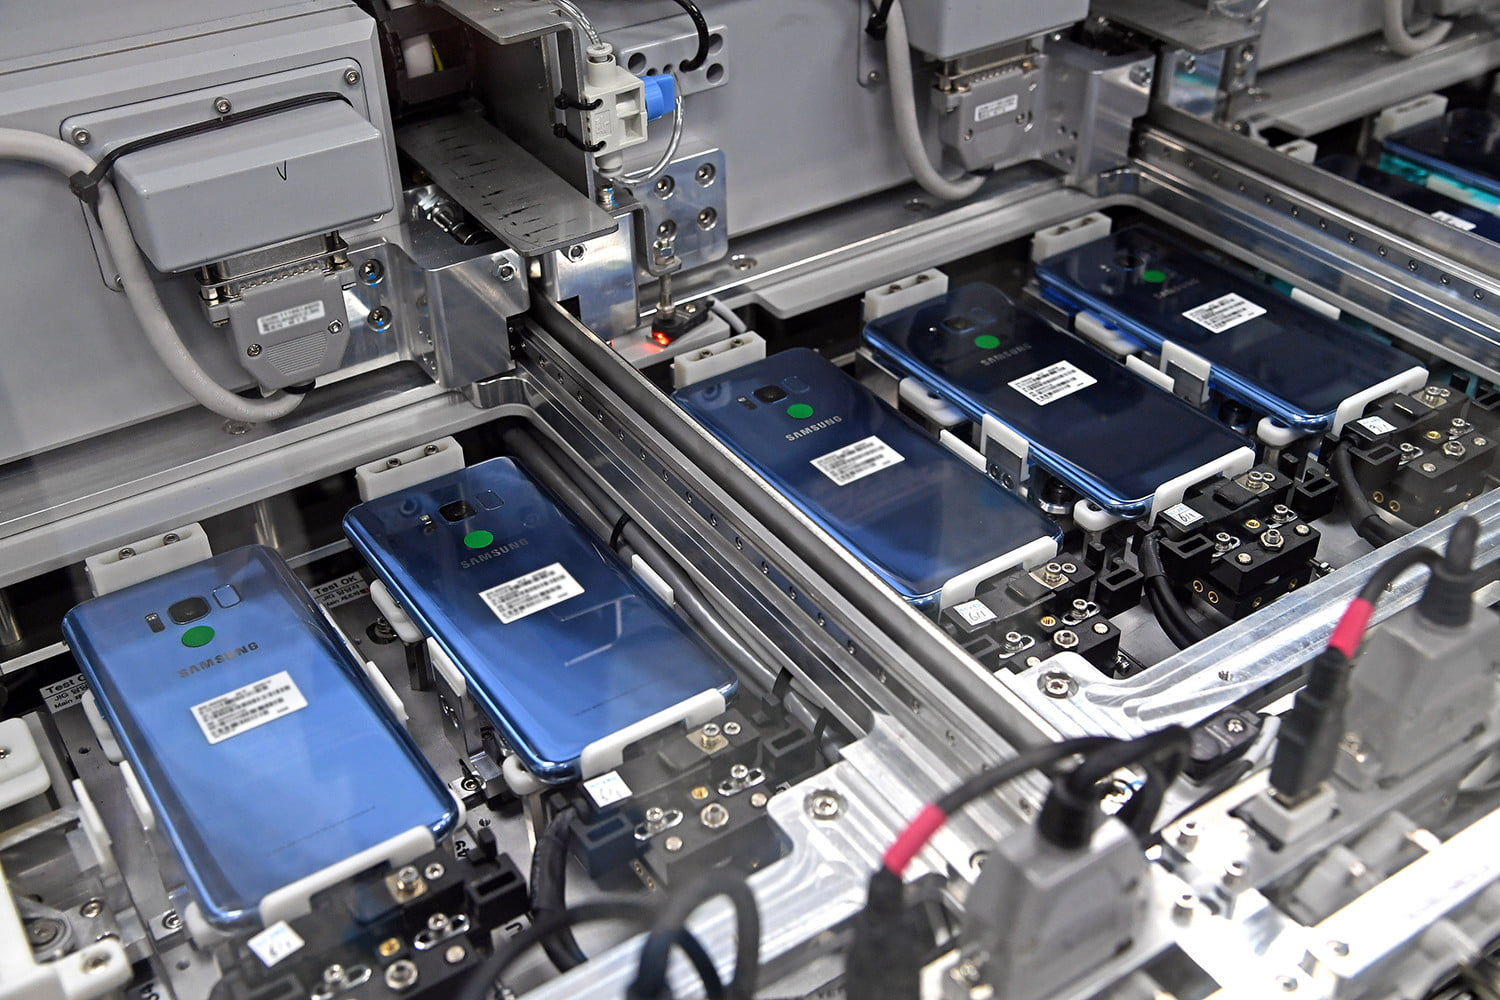 How Samsung Built The Galaxy S8 Design Battery Tech Features And Hard Drive Circuit Board Pcb More Digital Trends